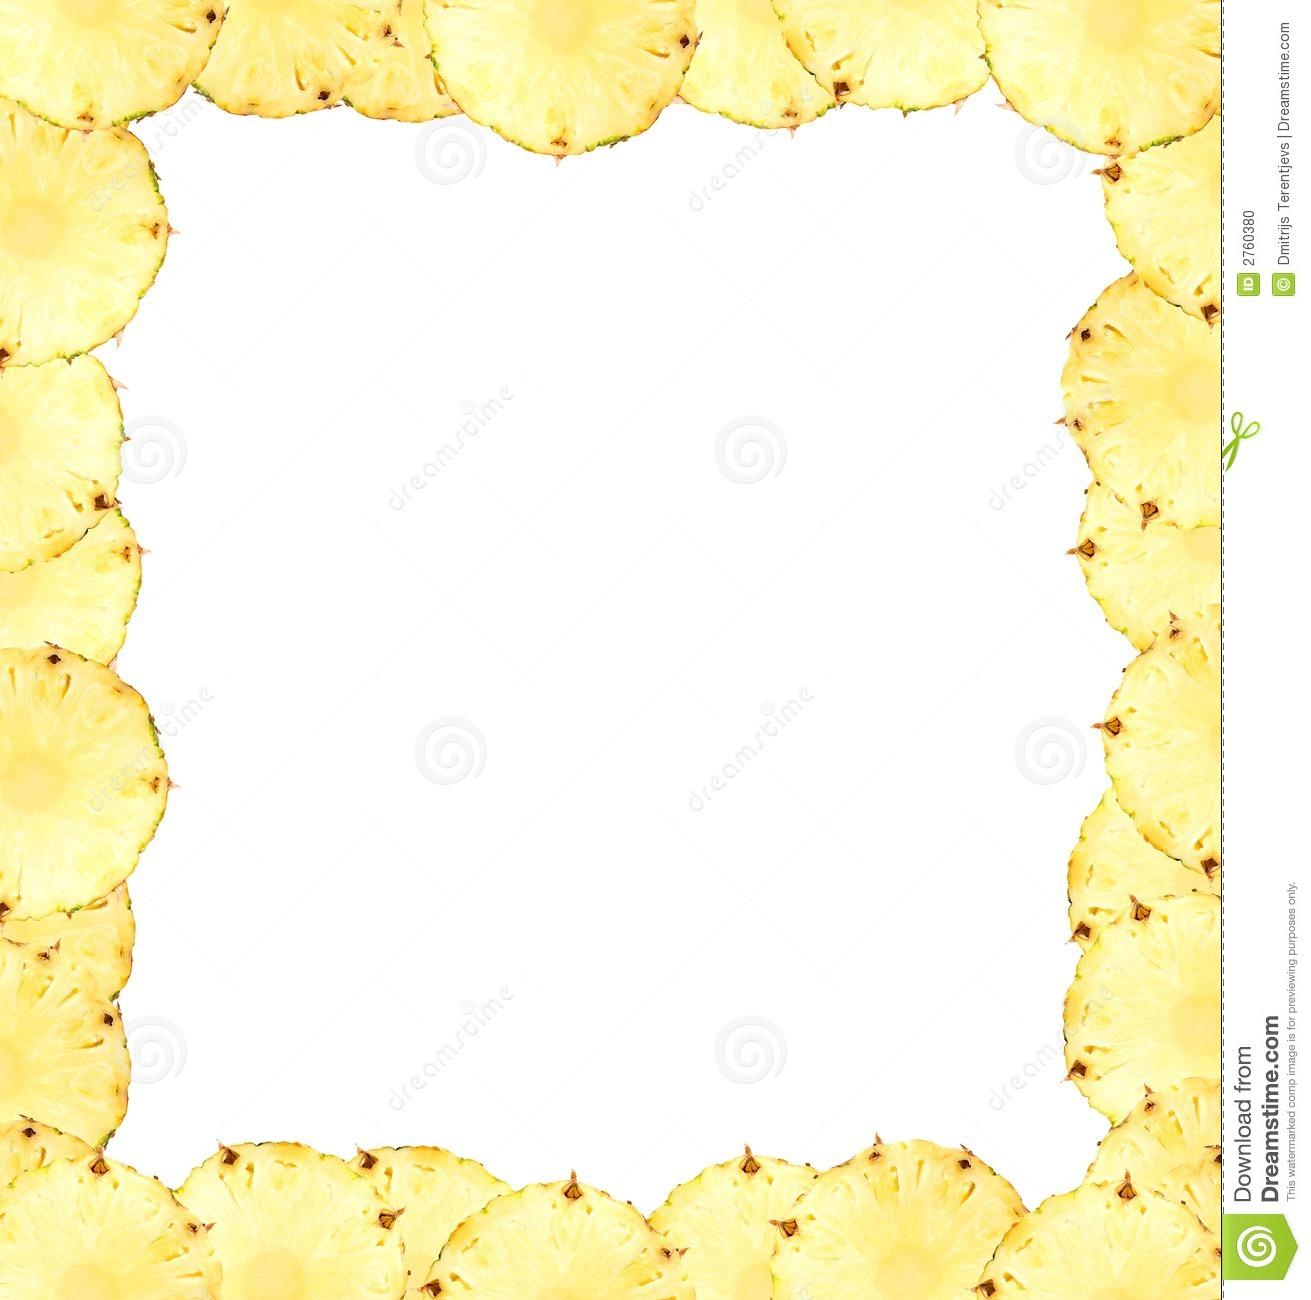 Banana clipart border Pineapple cliparts Clipart Border Pineapple